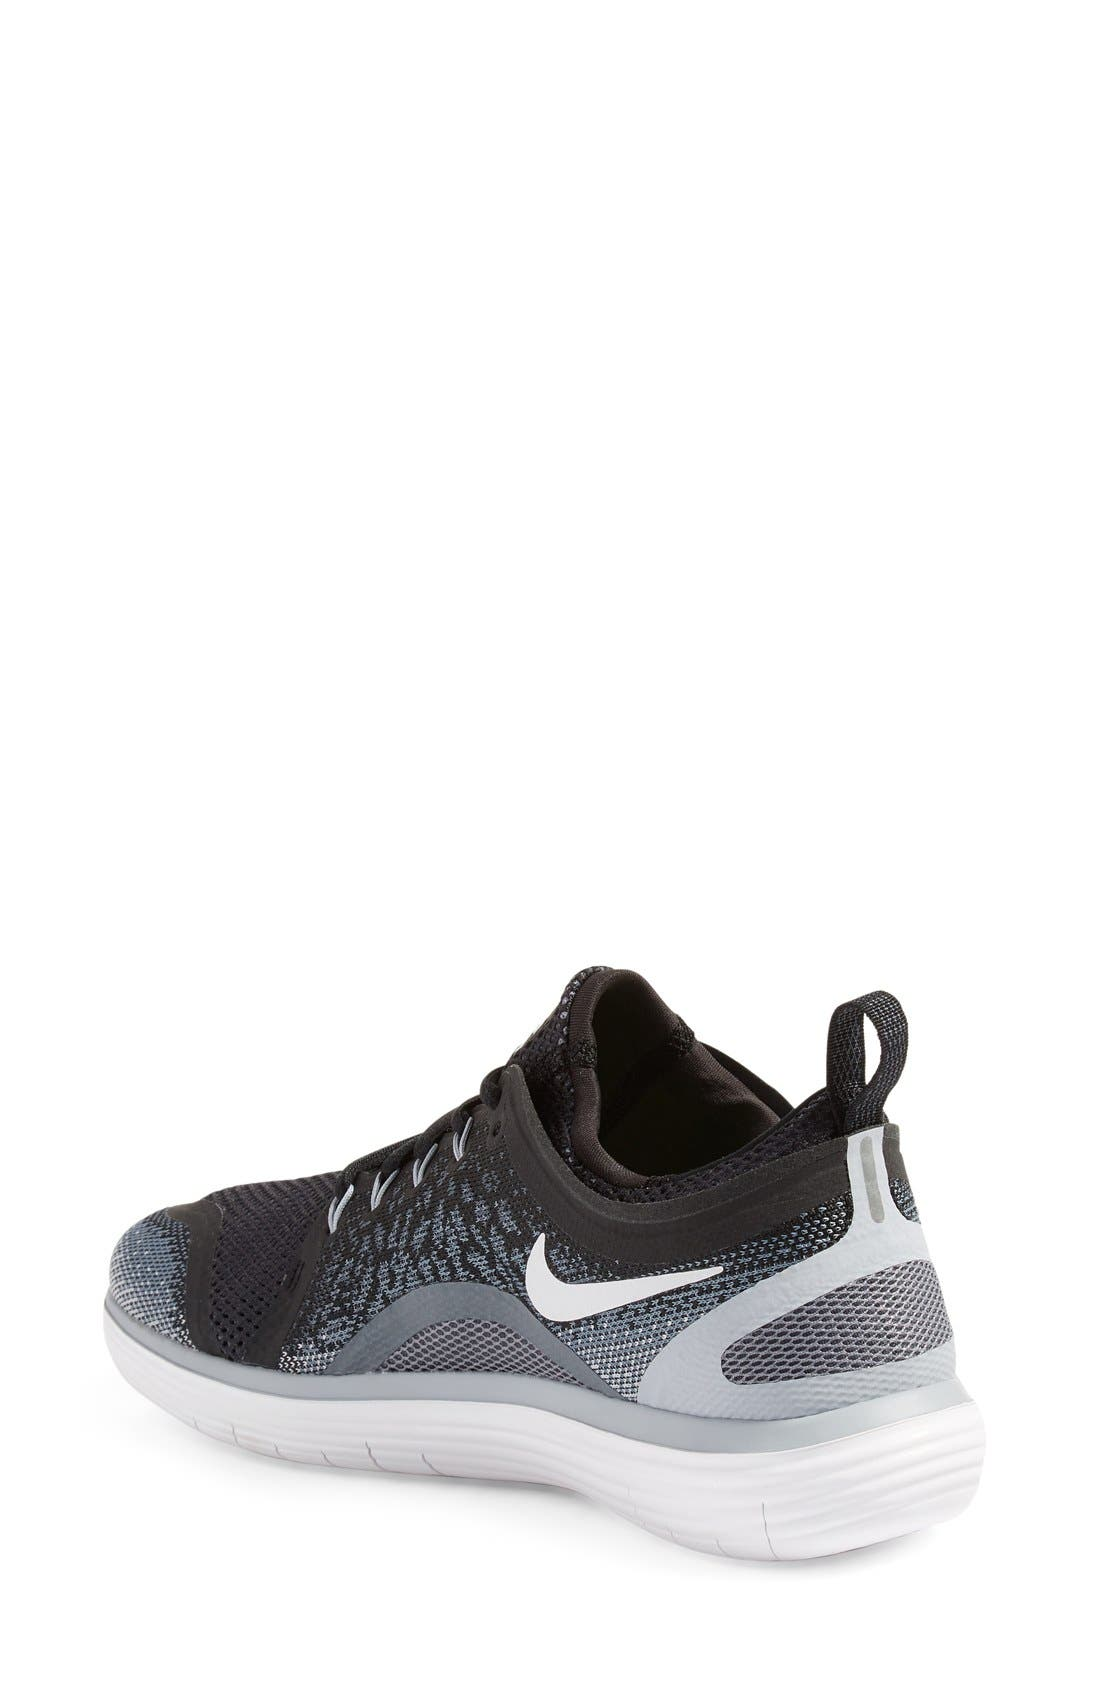 Free Run Distance 2 Running Shoe,                             Alternate thumbnail 7, color,                             001